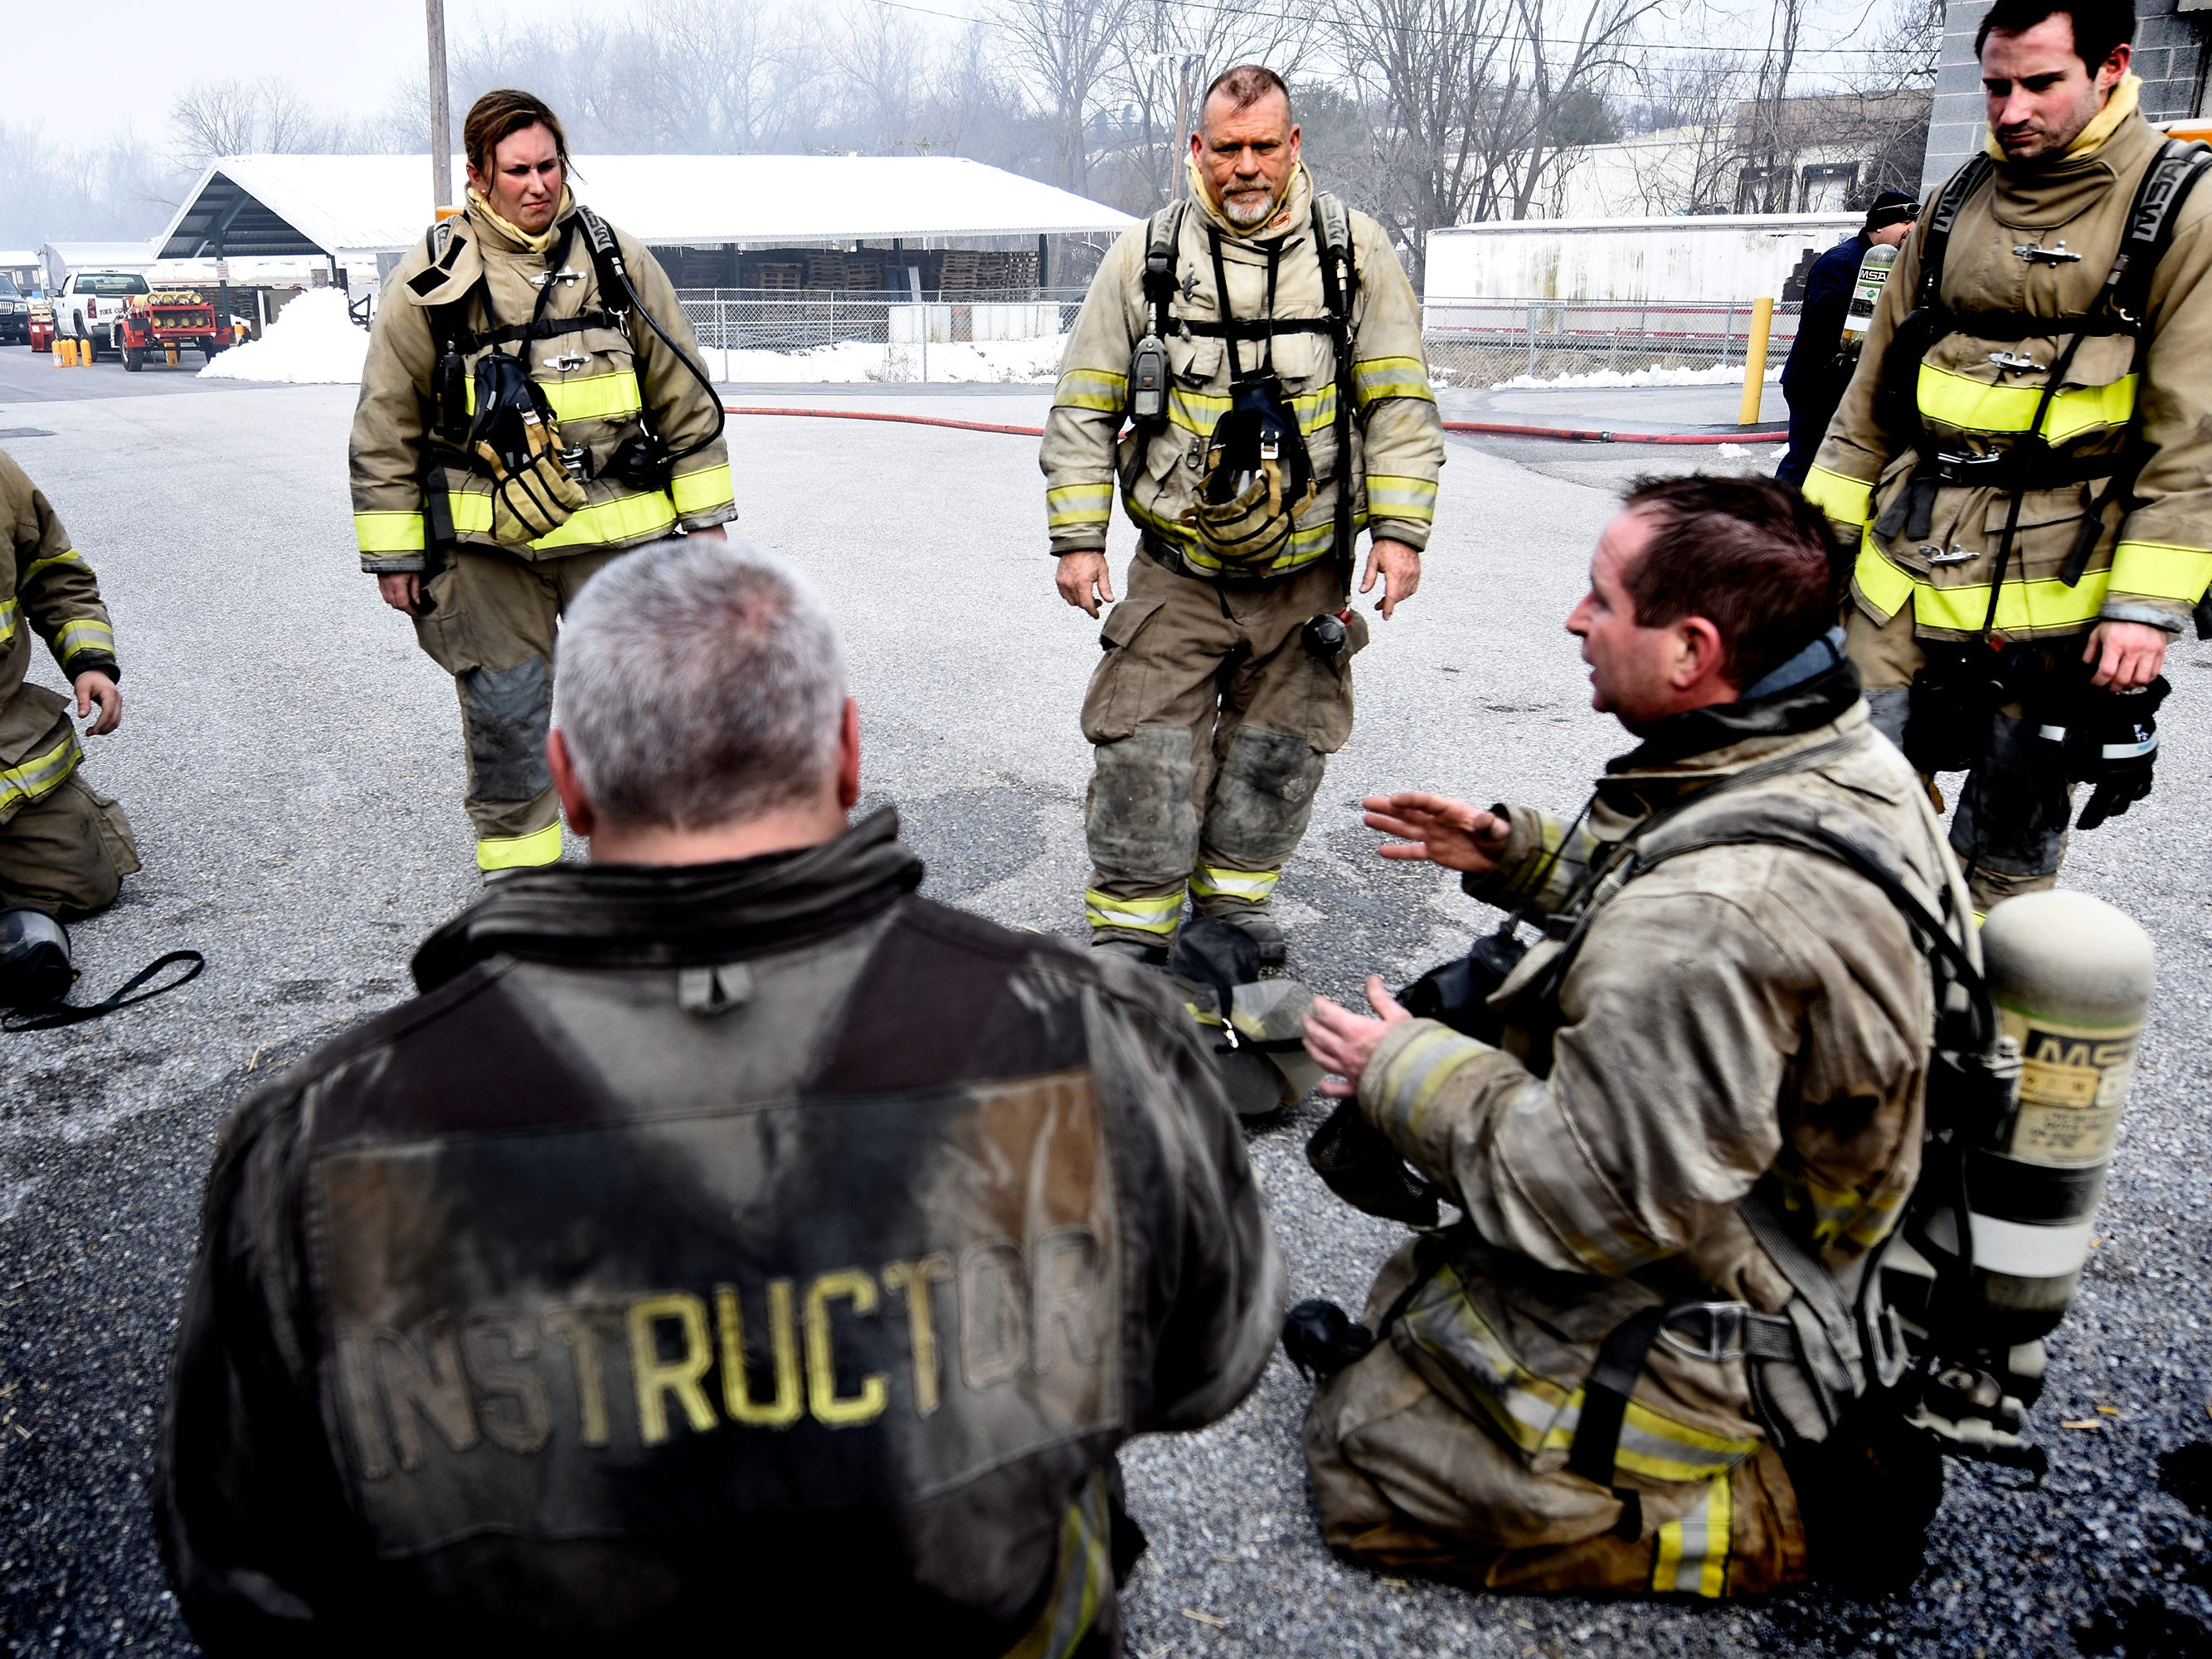 York County Fire School adjunct instructor Tom Rigling, right, talks with York County Prison workers during training at the school Friday, March 8, 2019. Members of the prison's 30-member Fire Emergency Response Team were completing a 40-hour fire training course there. Bill Kalina photo